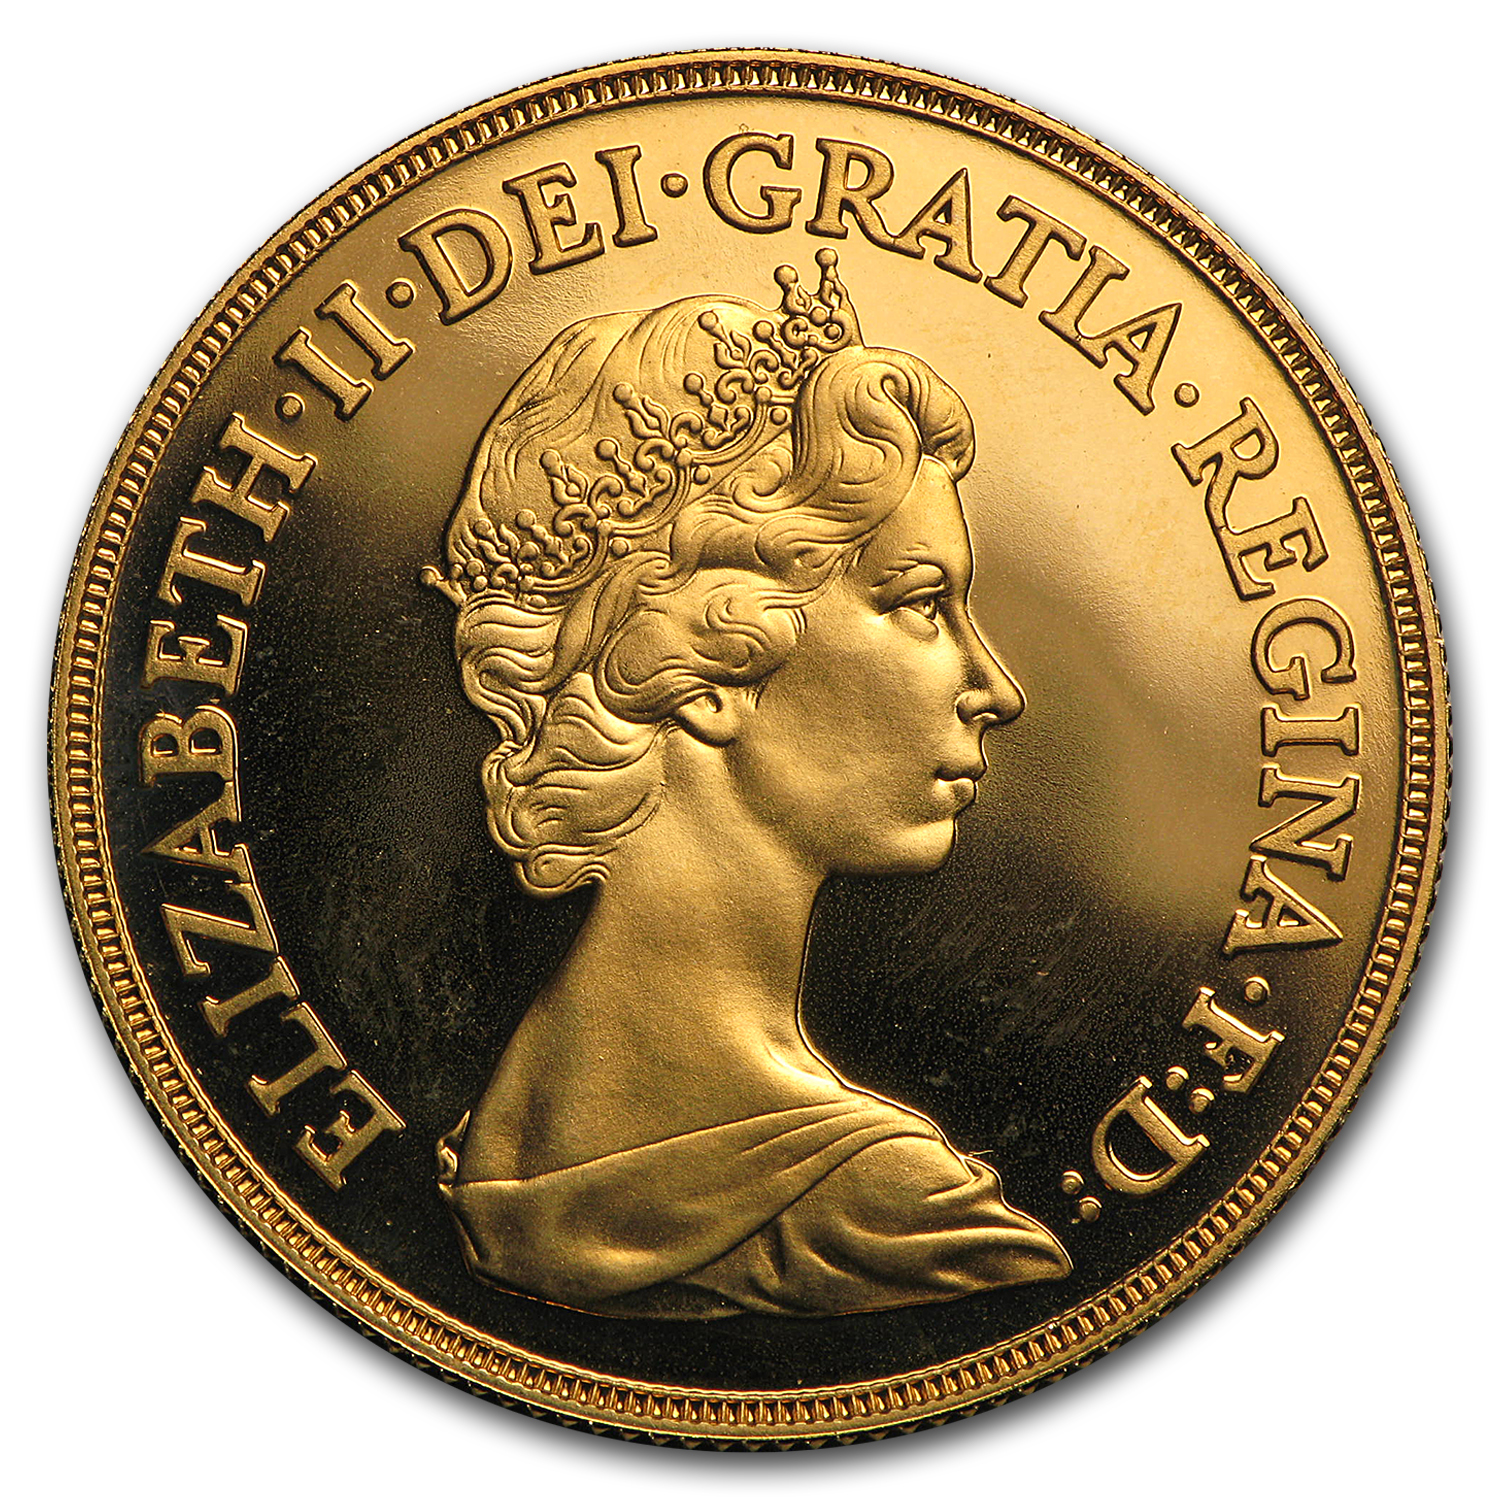 Great Britain Gold £2 Elizabeth II Proof (AGW .4708)